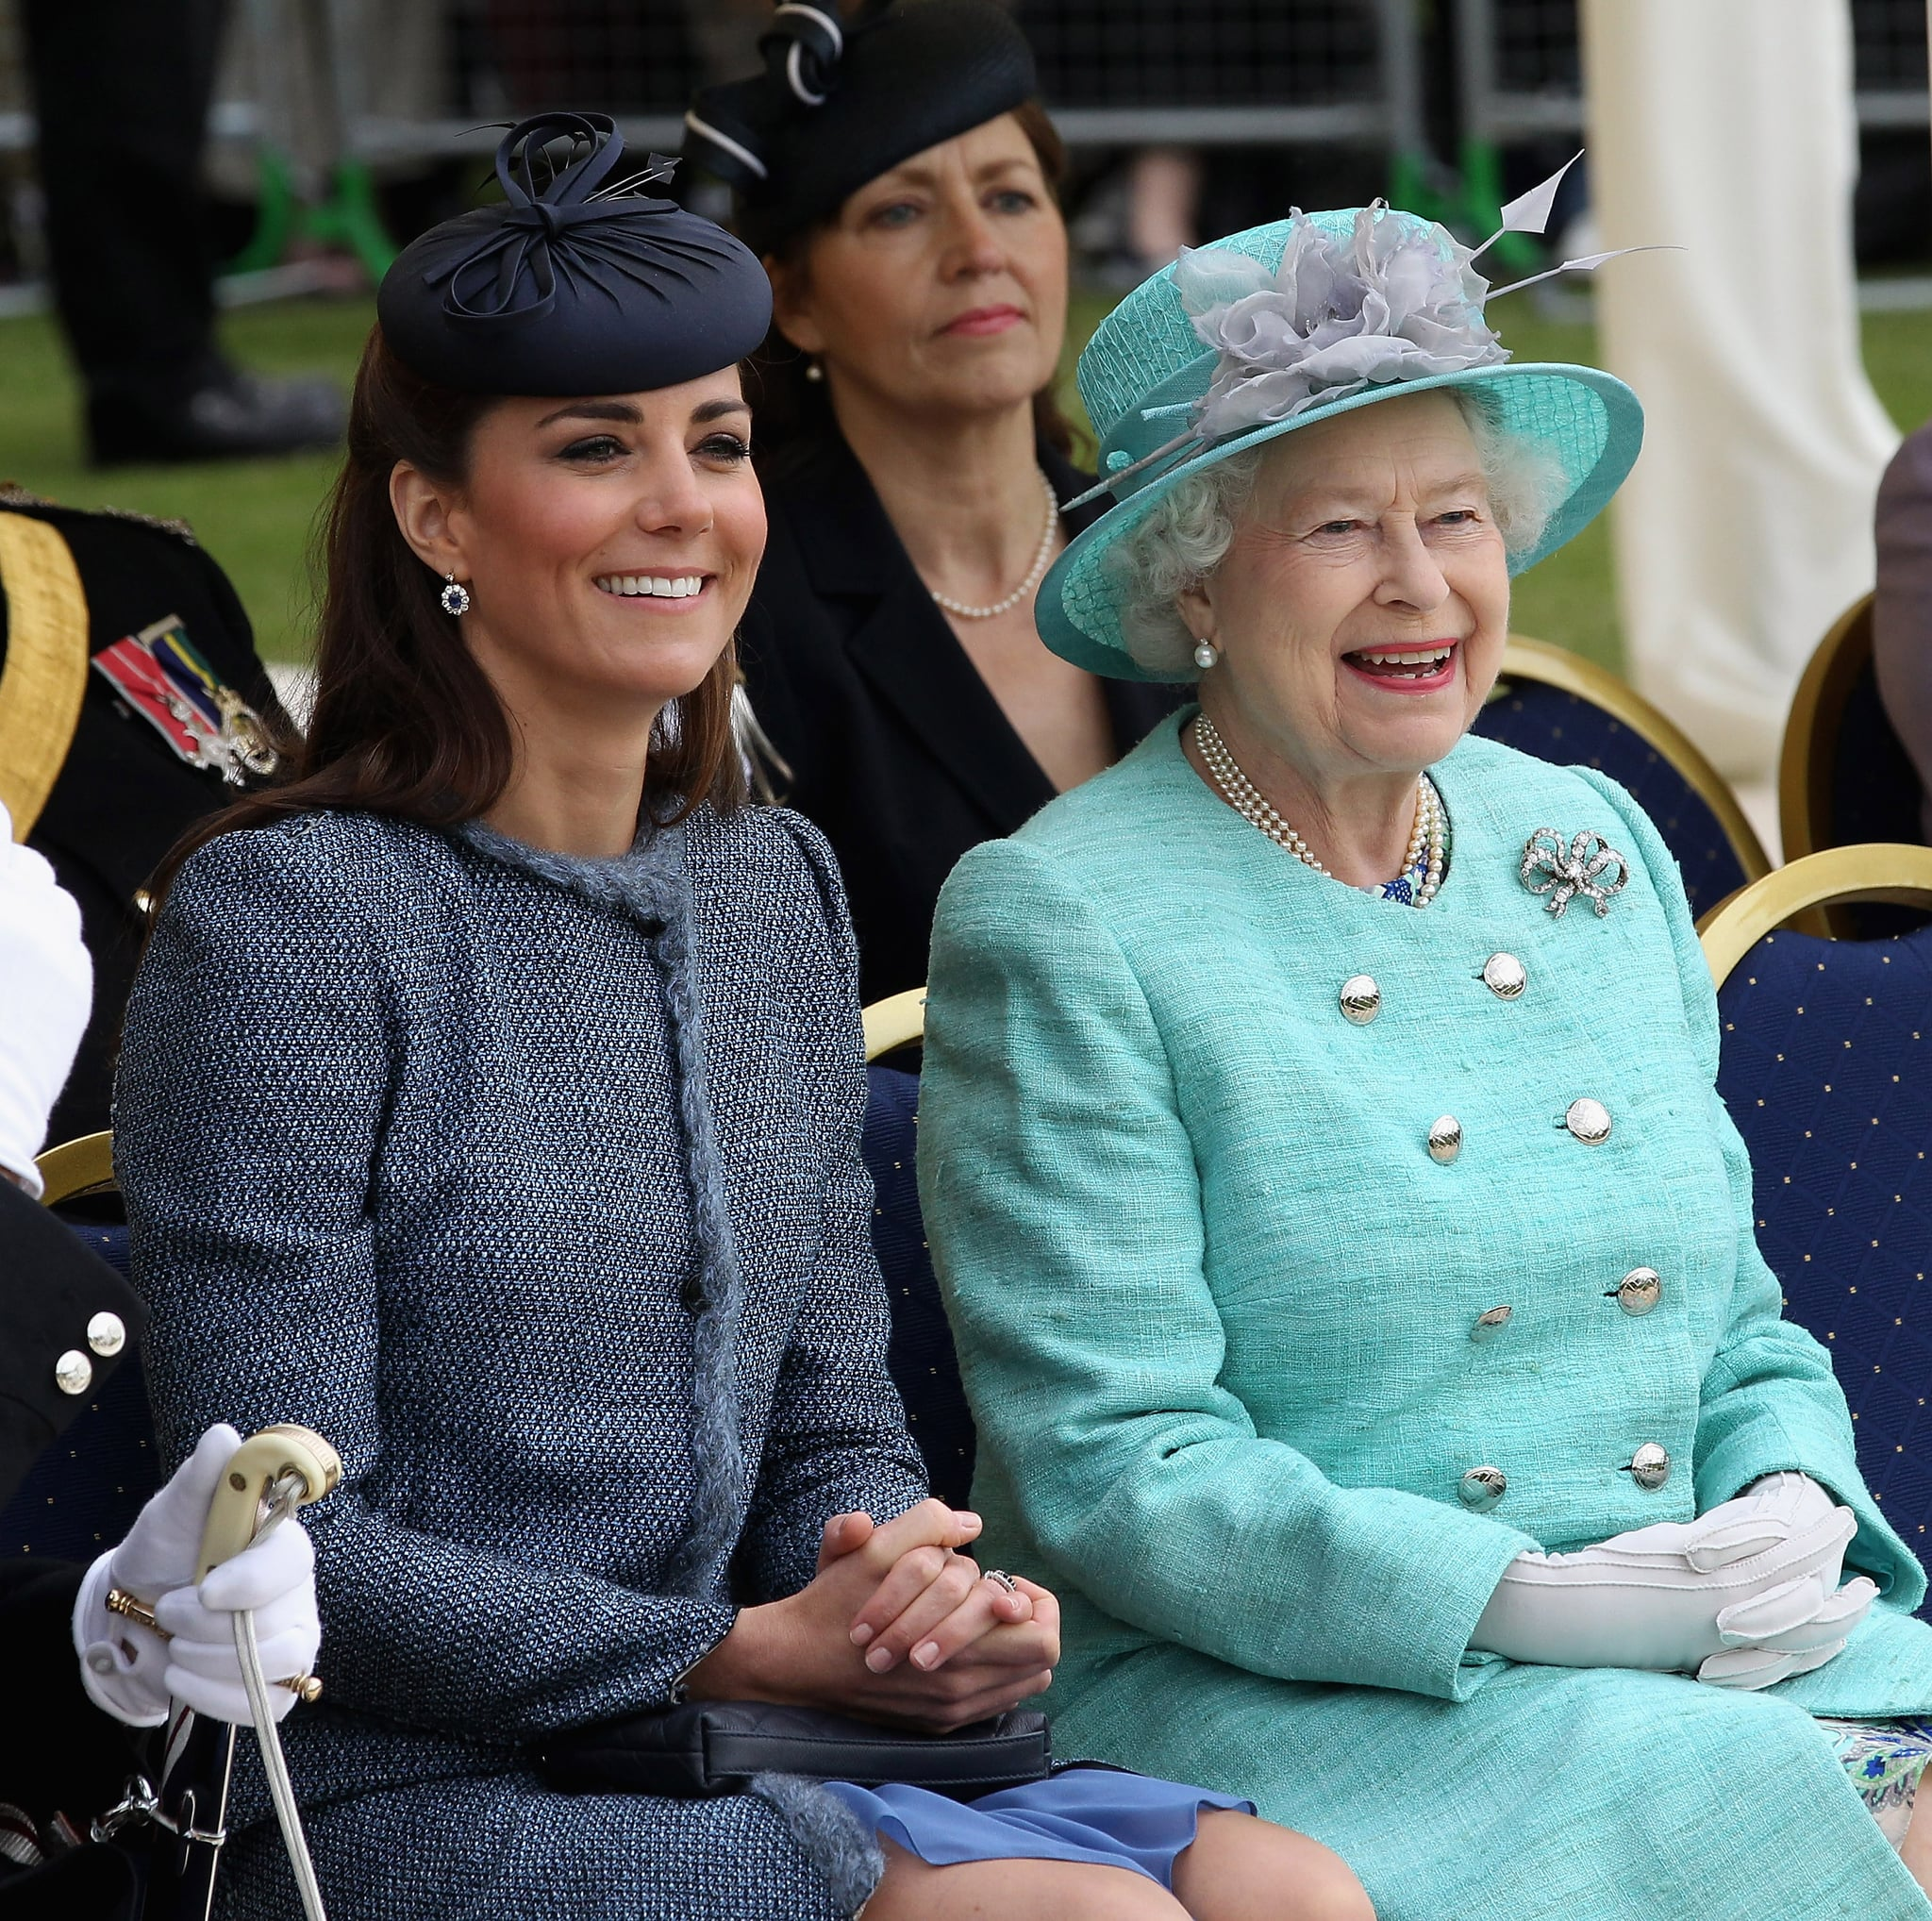 NOTTINGHAM, ENGLAND - JUNE 13:  Catherine, Duchess of Cambridge and Queen Elizabeth II smile as they visit Vernon Park during a Diamond Jubilee visit to Nottingham on June 13, 2012 in Nottingham, England.  (Photo by Chris Jackson/Getty Images)